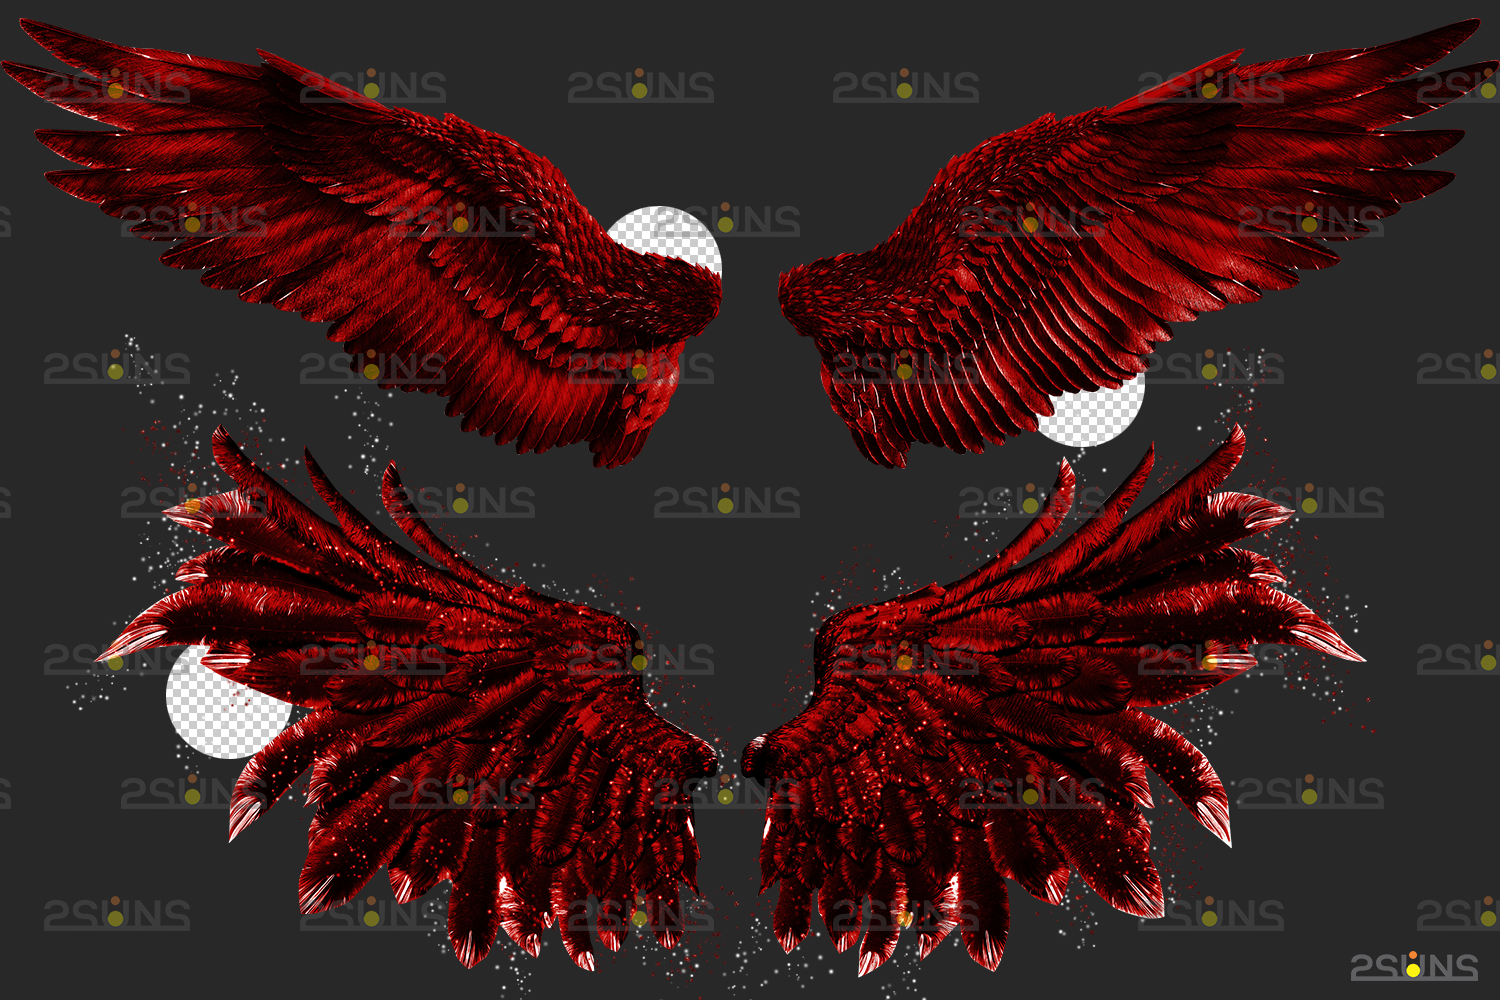 Red angel wings png & Photoshop overlay: Digital angel wings overlay, Digital backdrops wings, Fire - 003 70 -